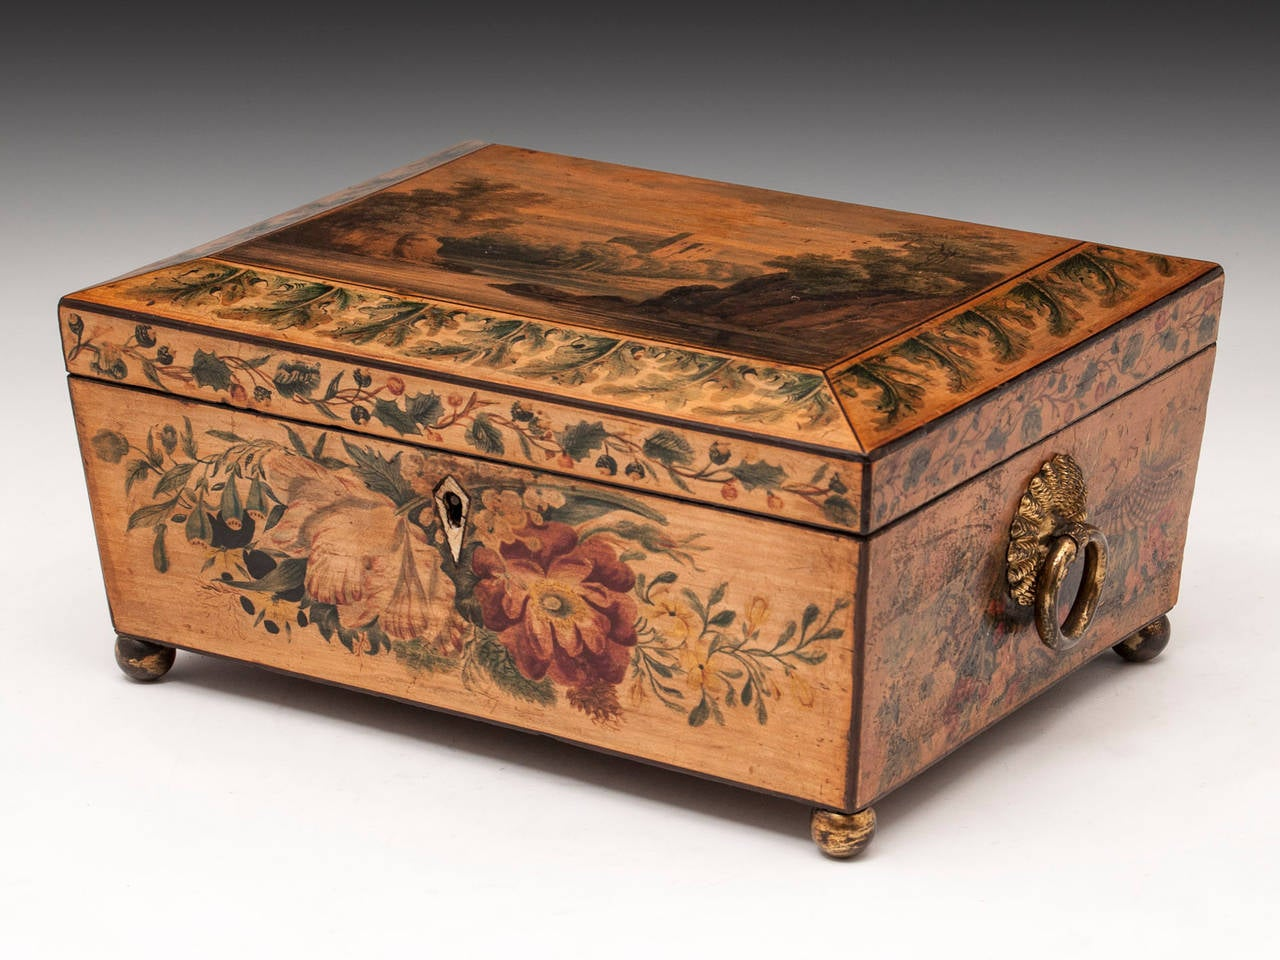 Regency Penwork Sycamore Sewing Box In Good Condition For Sale In Northampton, United Kingdom